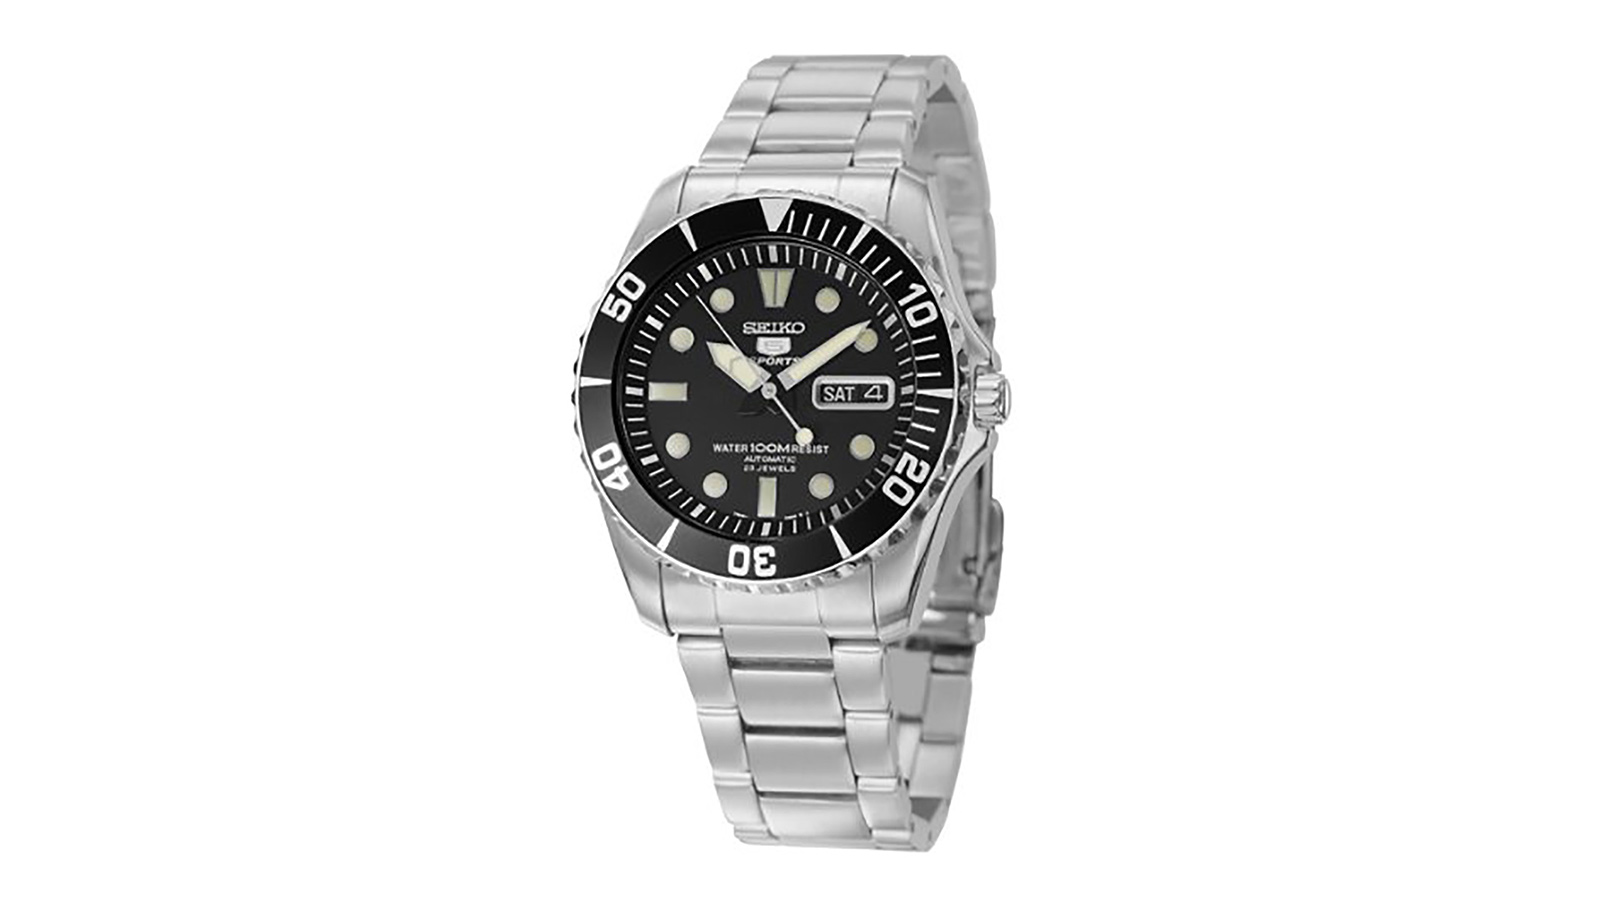 Seiko Men's SNZF17J1 5 Sports Automatic Stainless Steel Watch | the best men's watches under $200